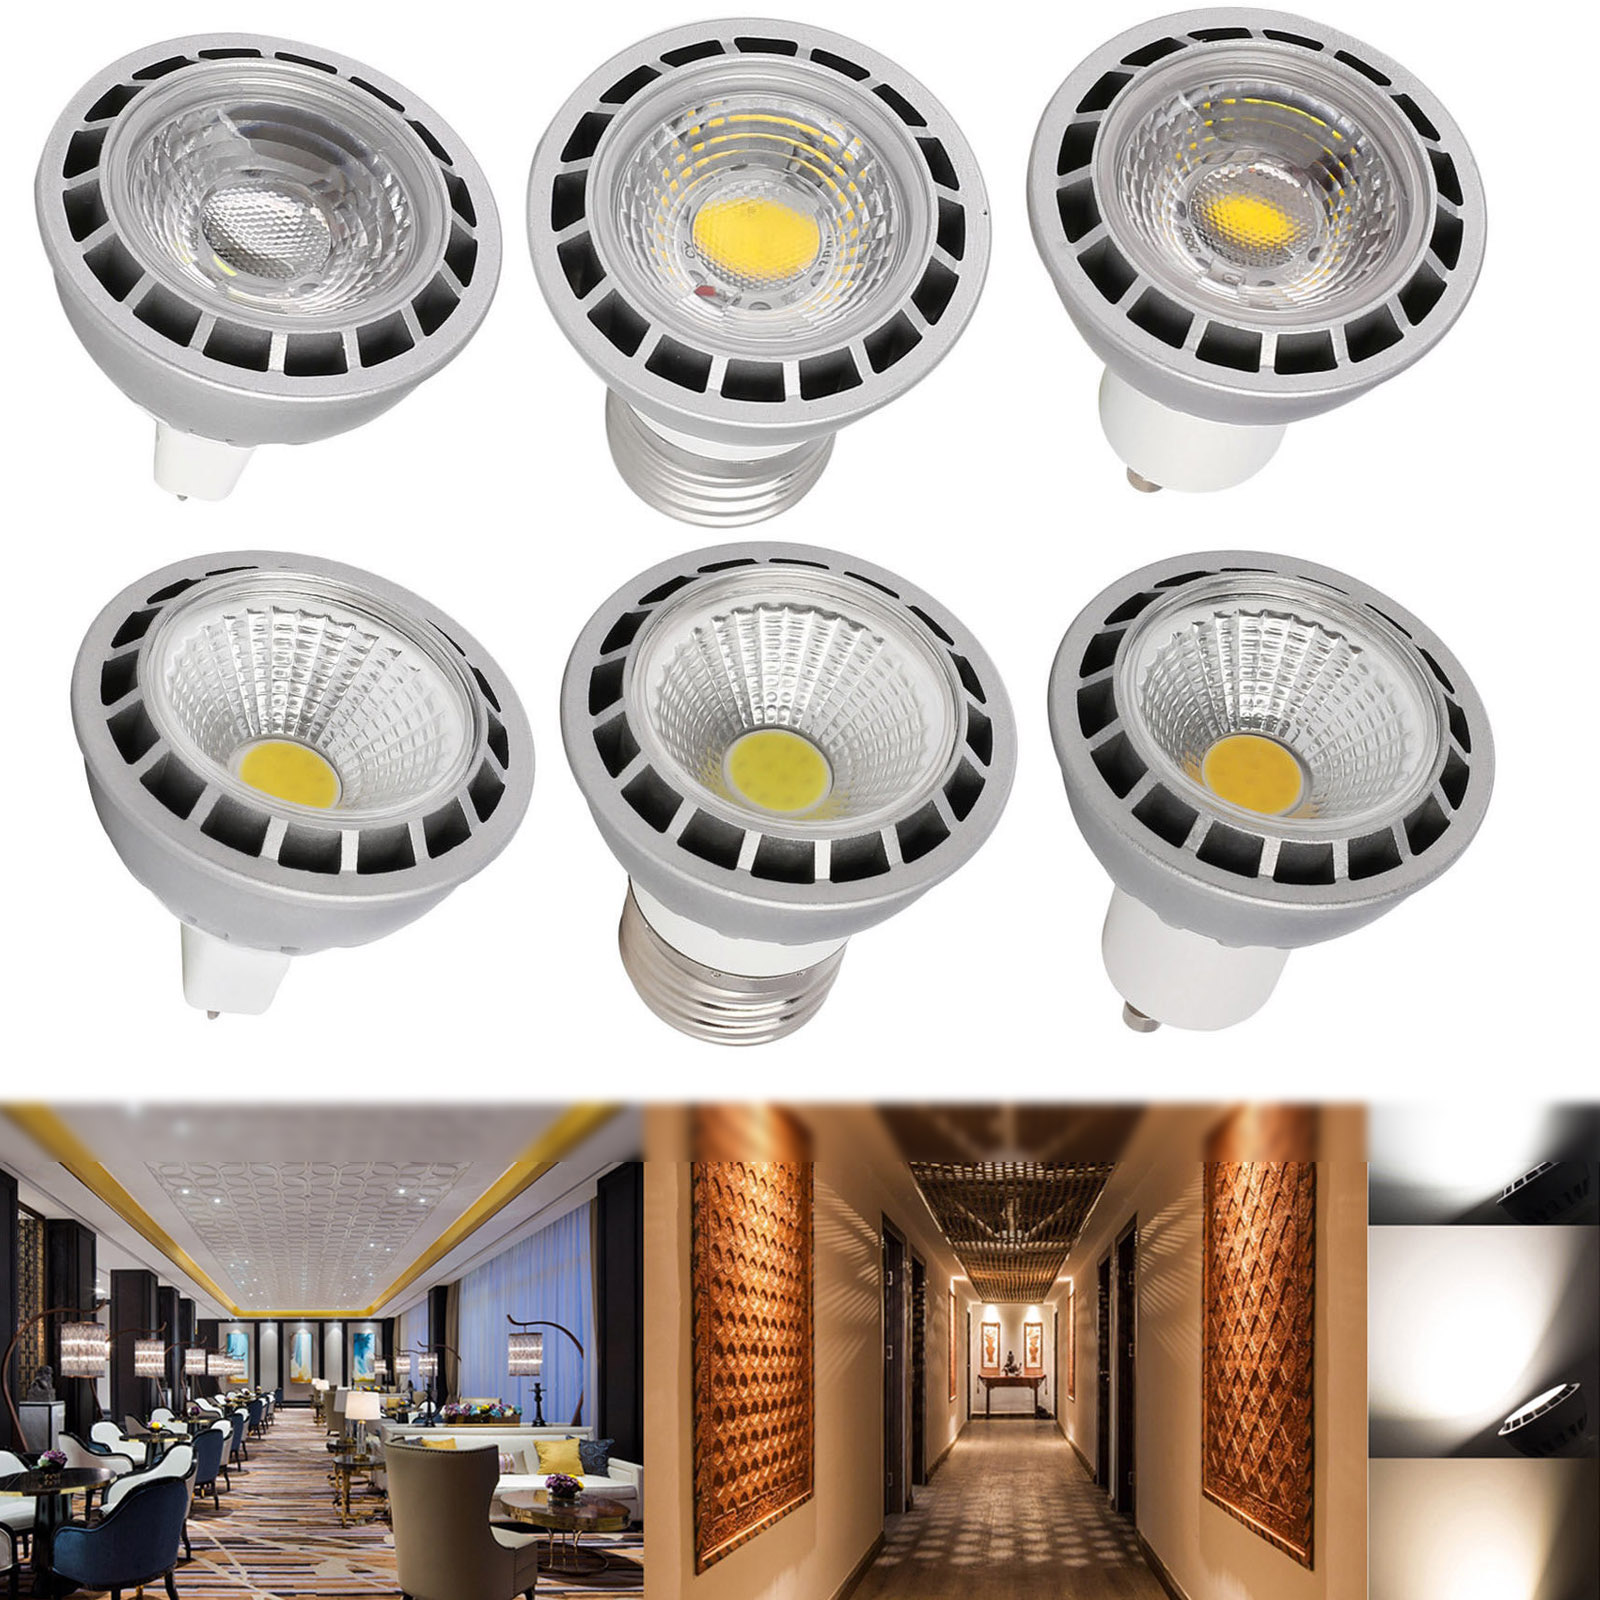 Led Spot Gu10 Details About Dimmable Cob Led Spot Light Bulbs 15 Watt Gu10 Mr16 E26 E27 Bulb High Power Lamp